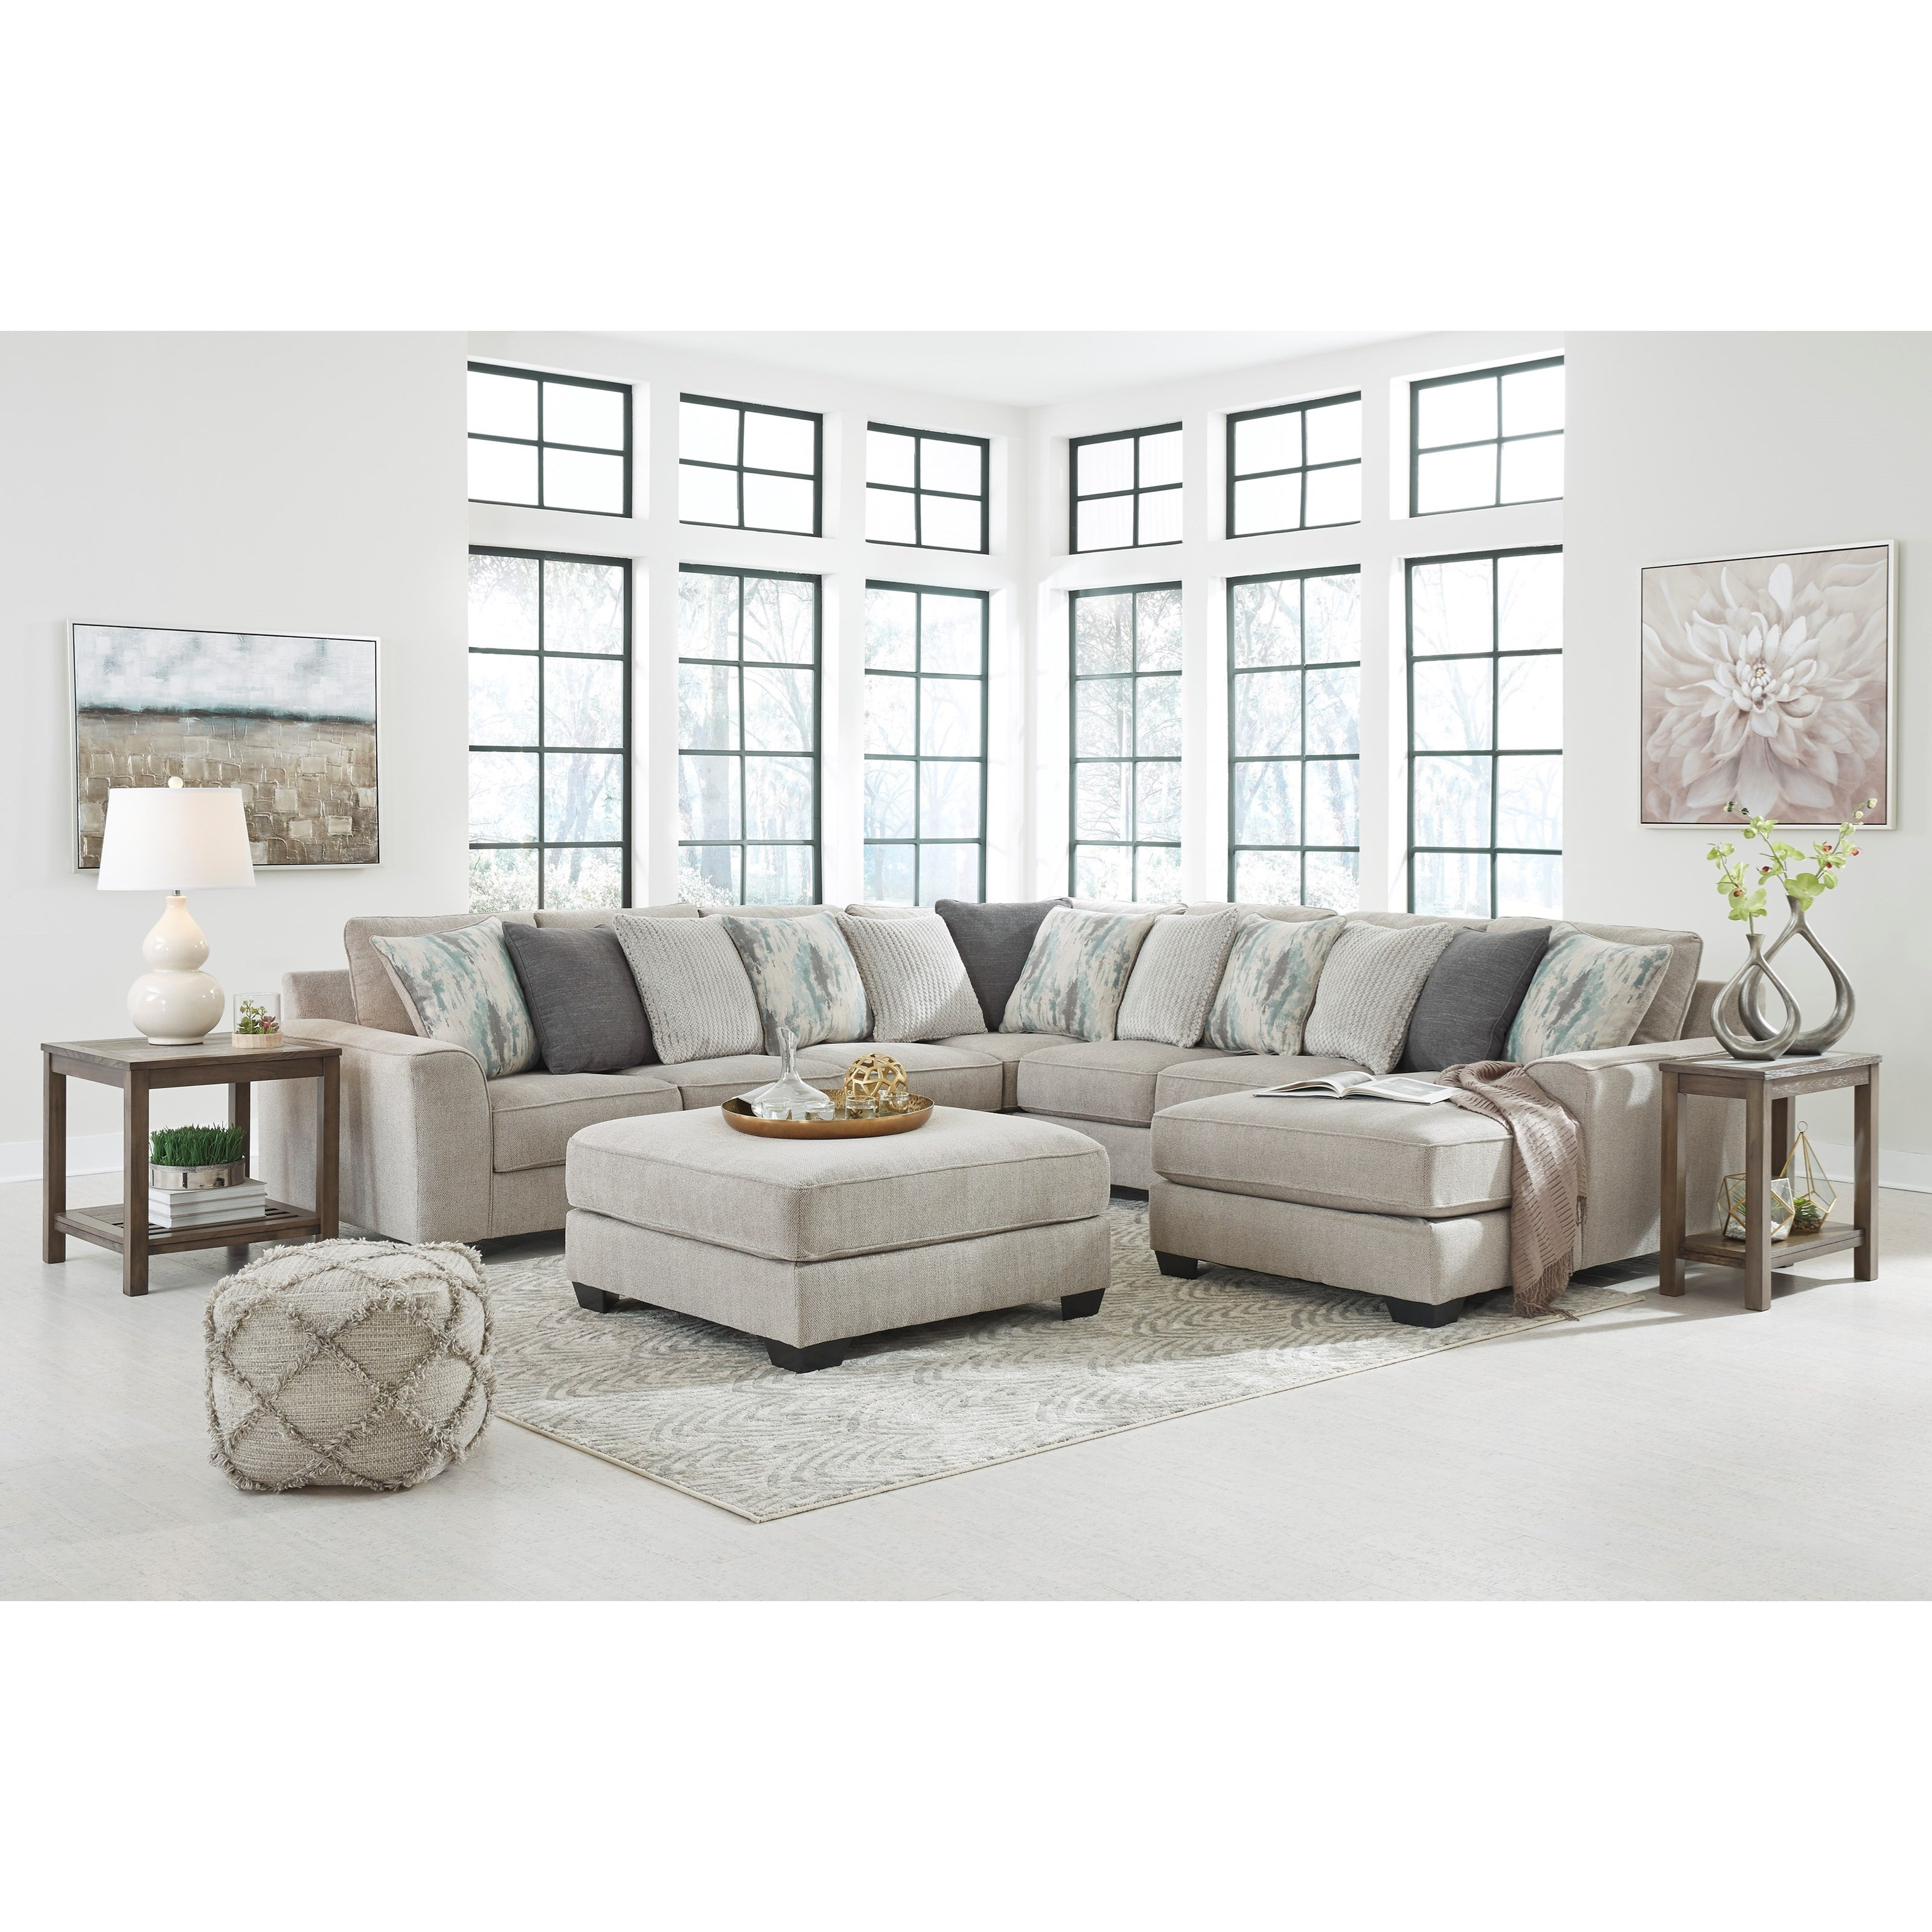 Ardsley Stationary Living Room Group by Benchcraft at Walker's Furniture